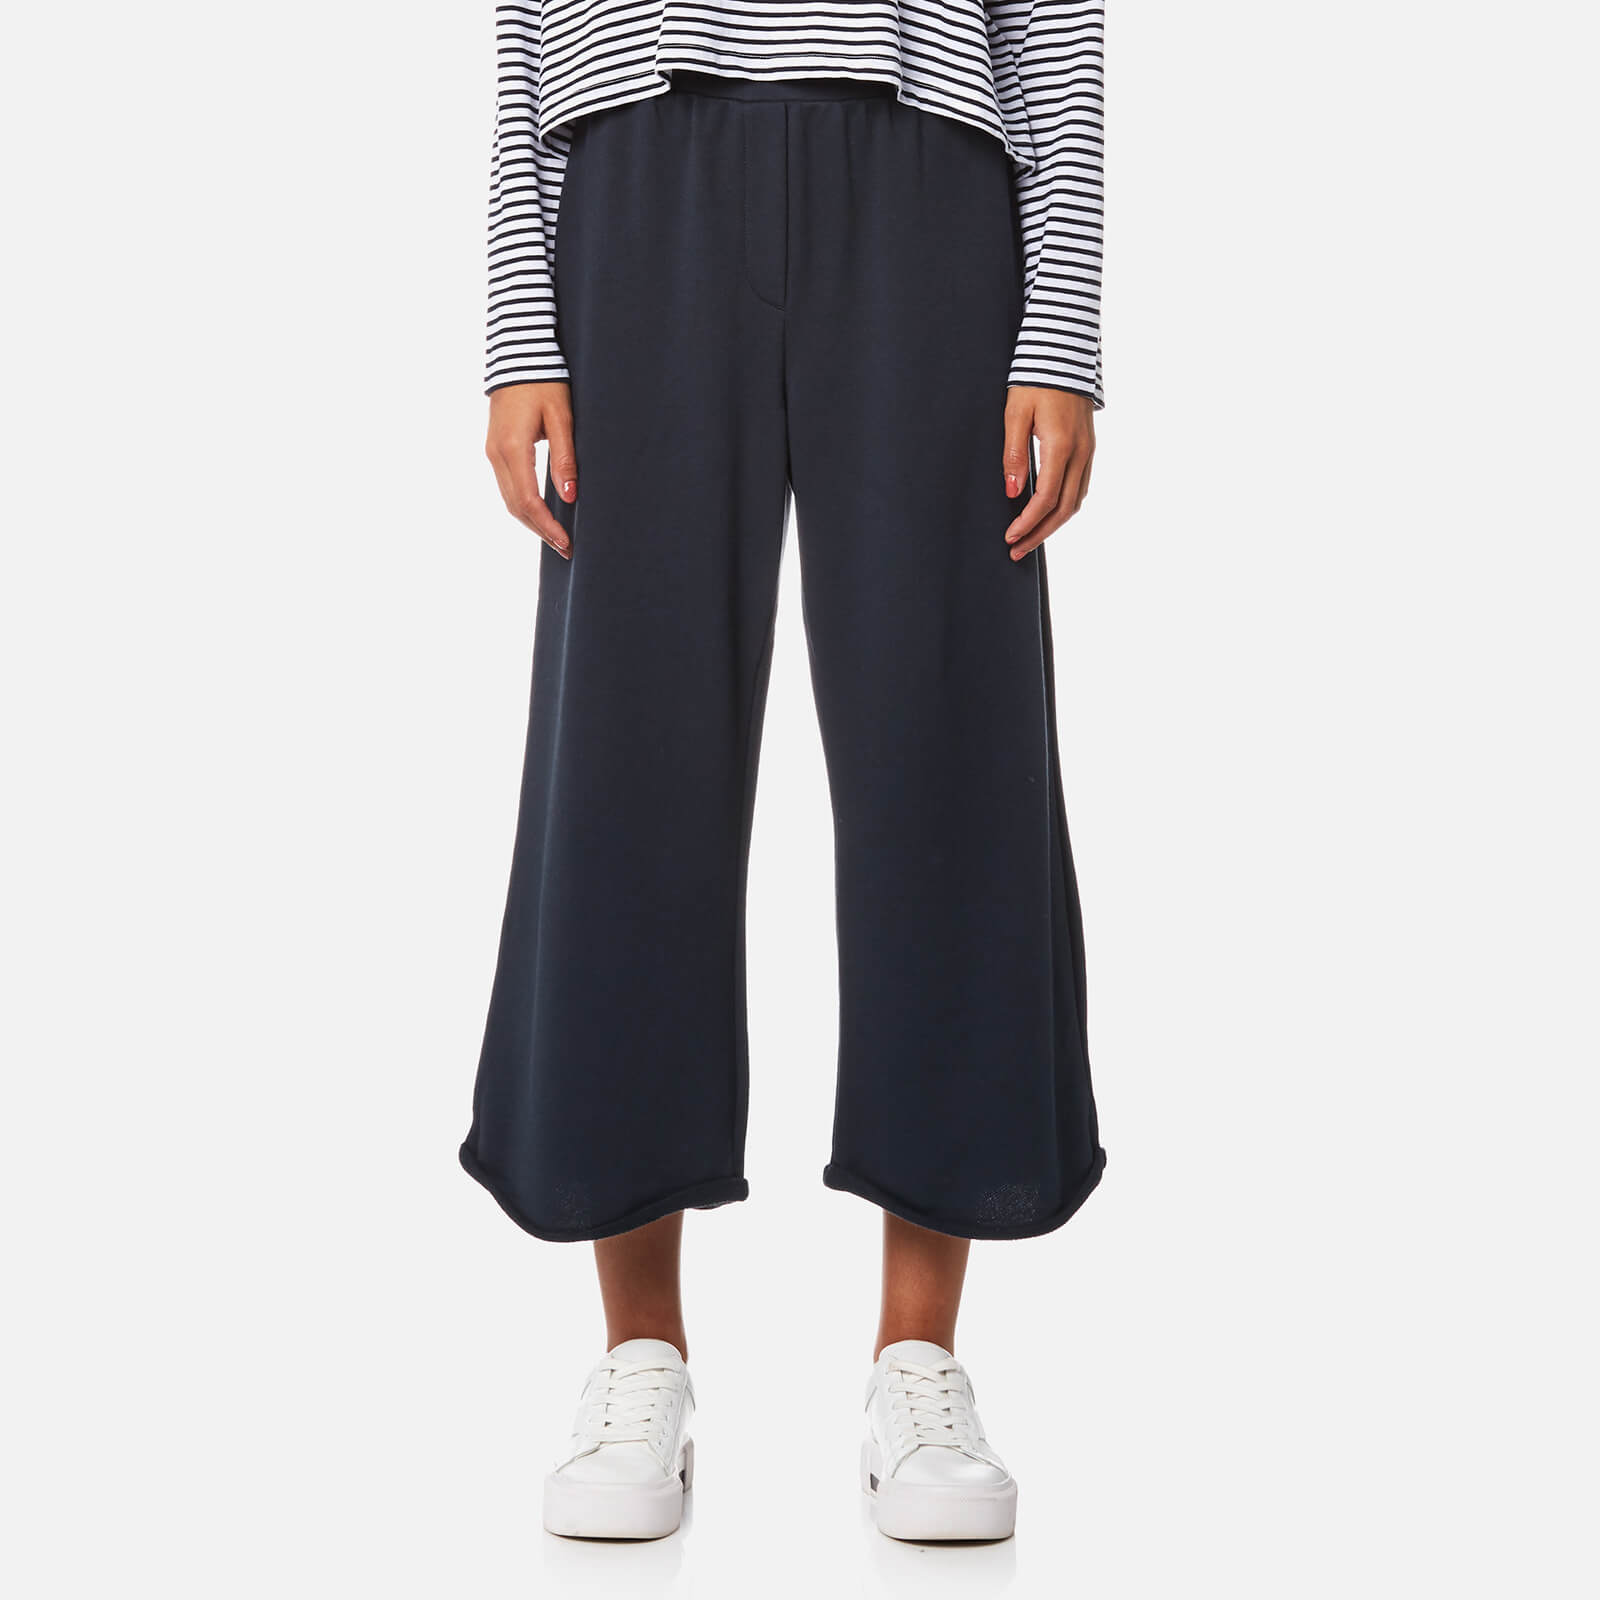 T by Alexander Wang Women s Pull On Wide Leg Cropped Pants - Navy - Free UK  Delivery over £50 5a0e7dd9723d8